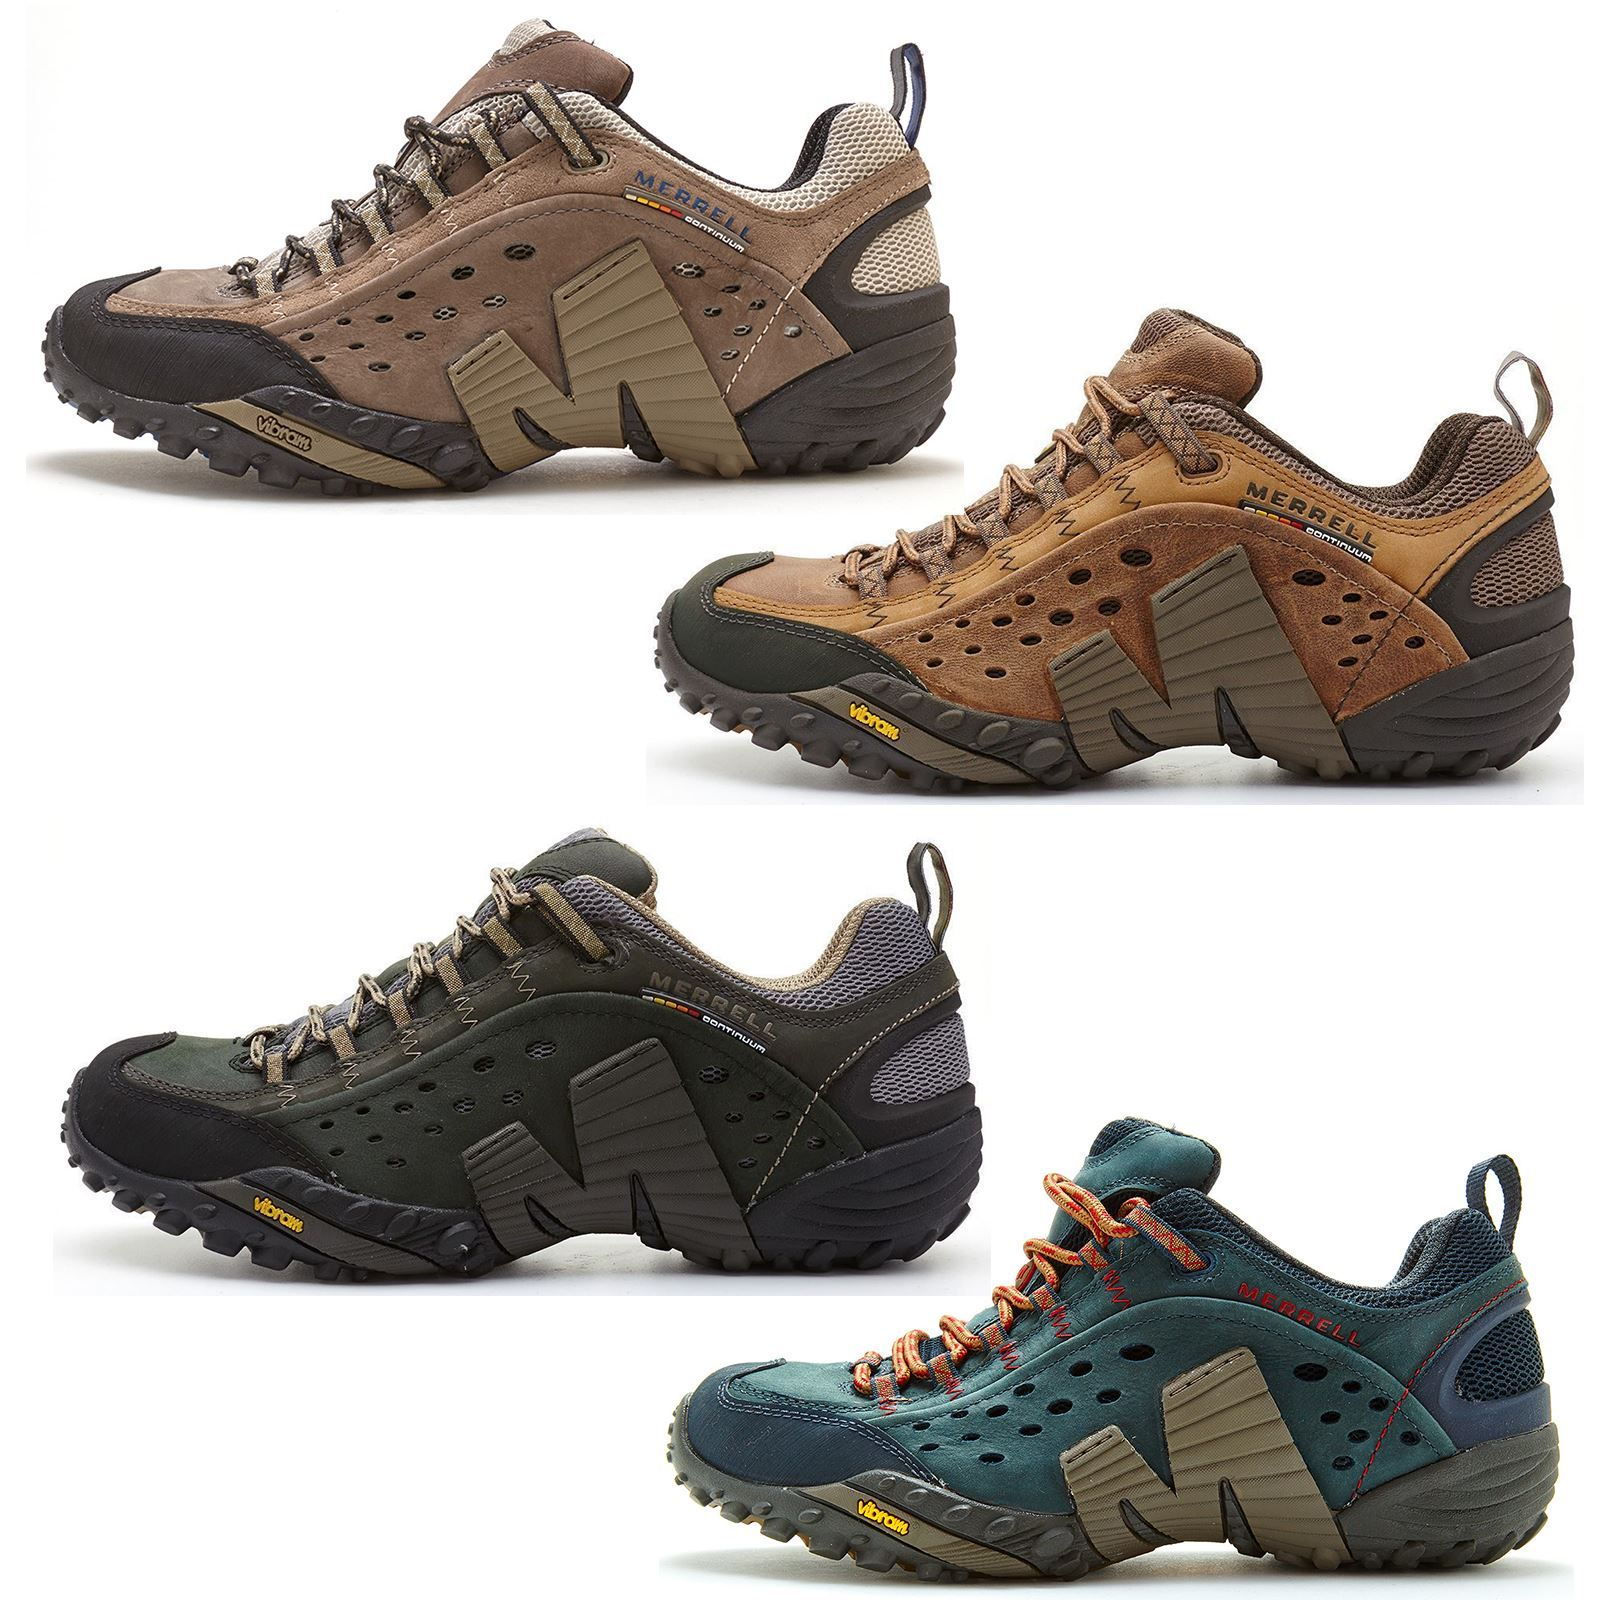 BEST HIKING SHOES FOR MEN 2018 REVIEWS